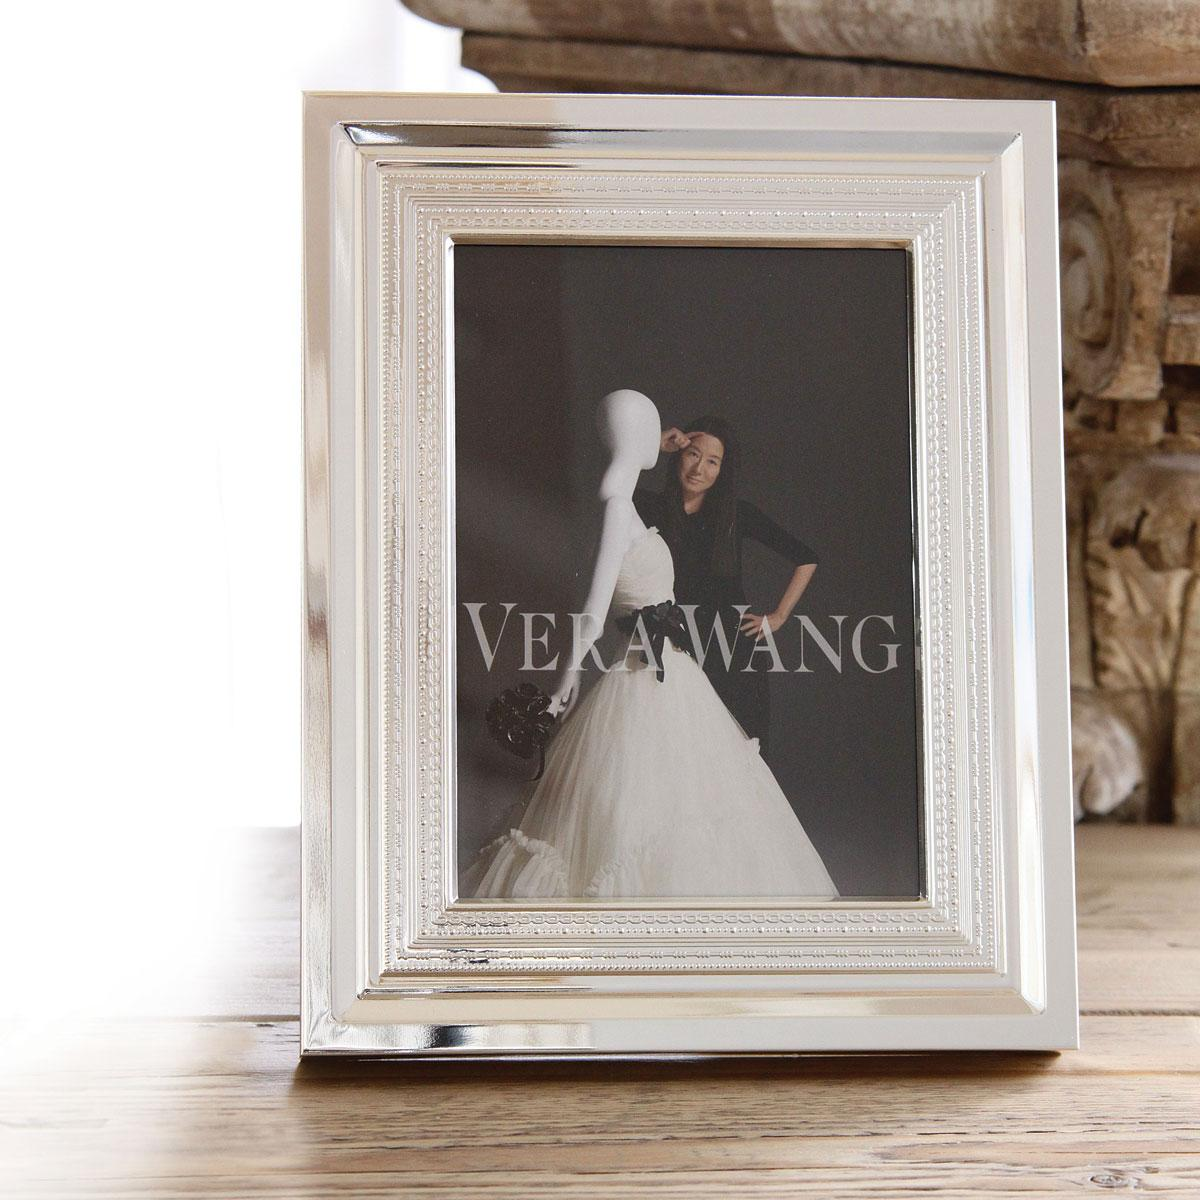 "Vera Wang Wedgwood With Love Silver 8x10"" Picture Frame"